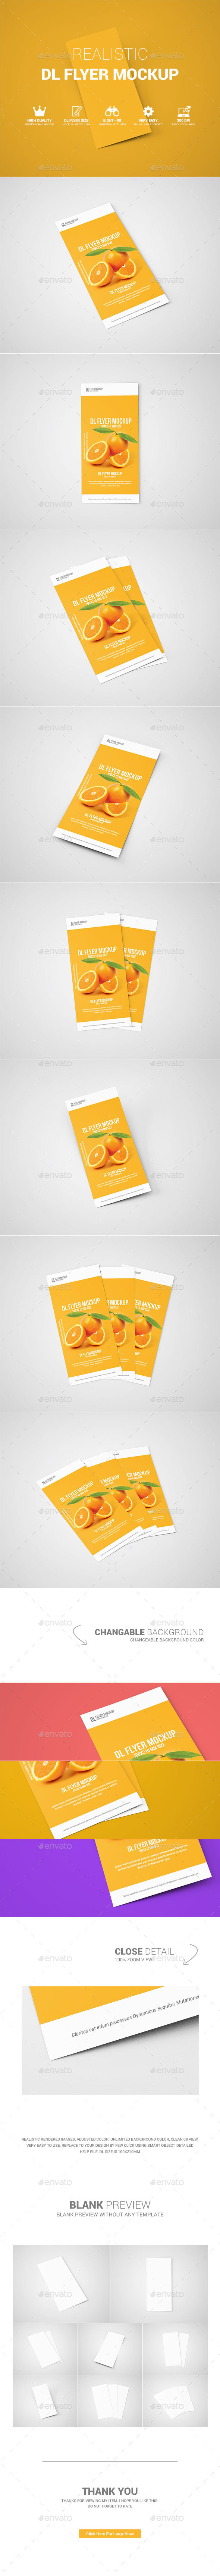 GraphicRiver DL Flyer Mock-Up 11562286